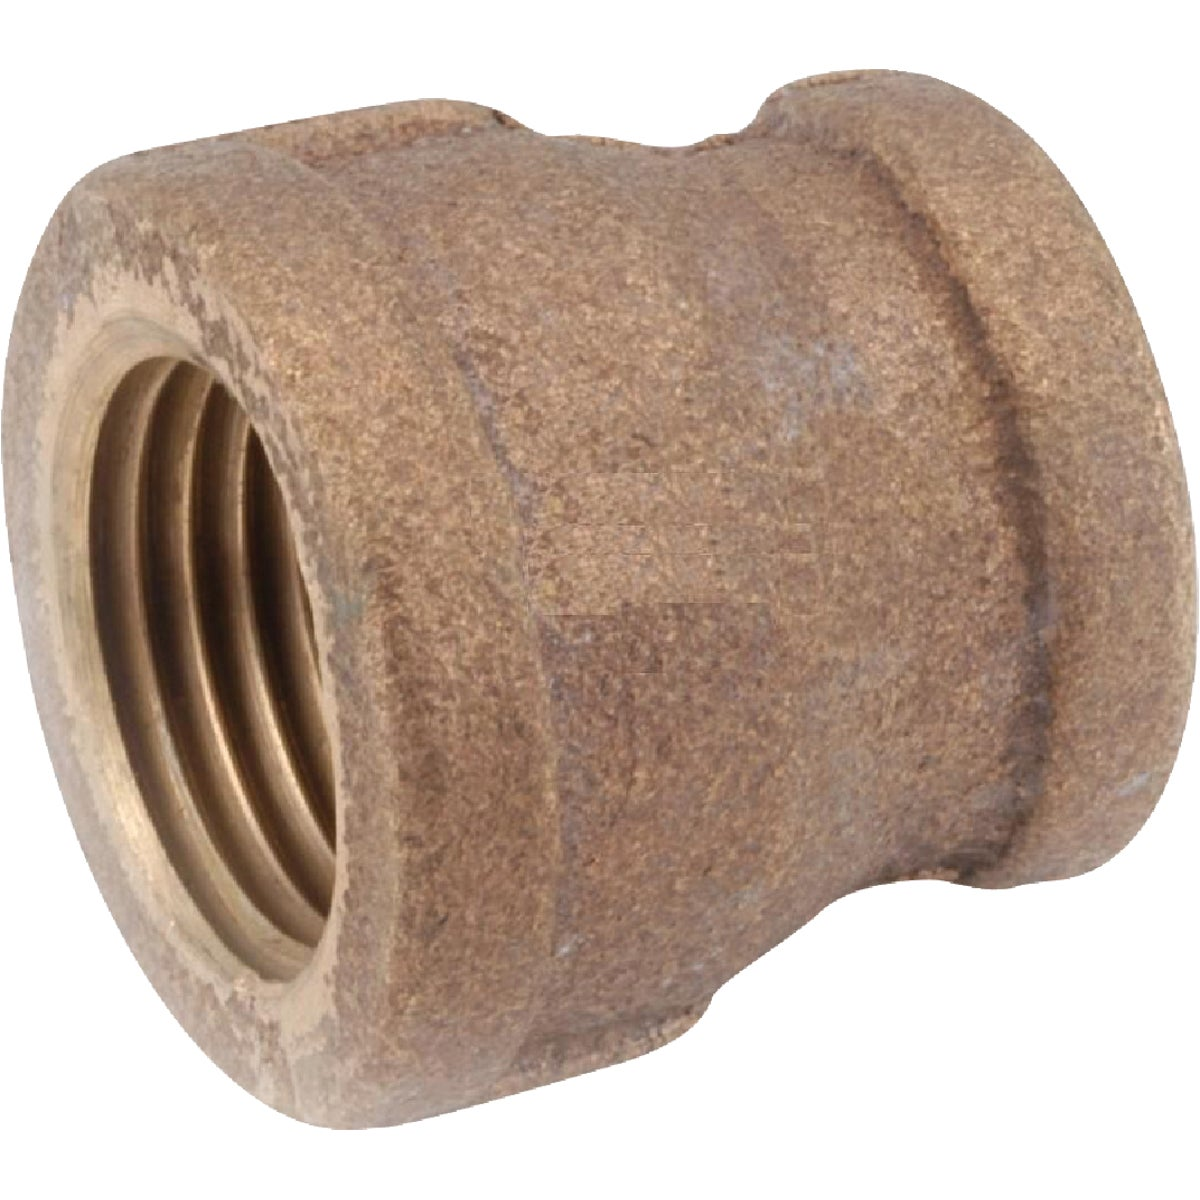 3/8X1/8 BRASS COUPLING - 738119-0602 by Anderson Metals Corp